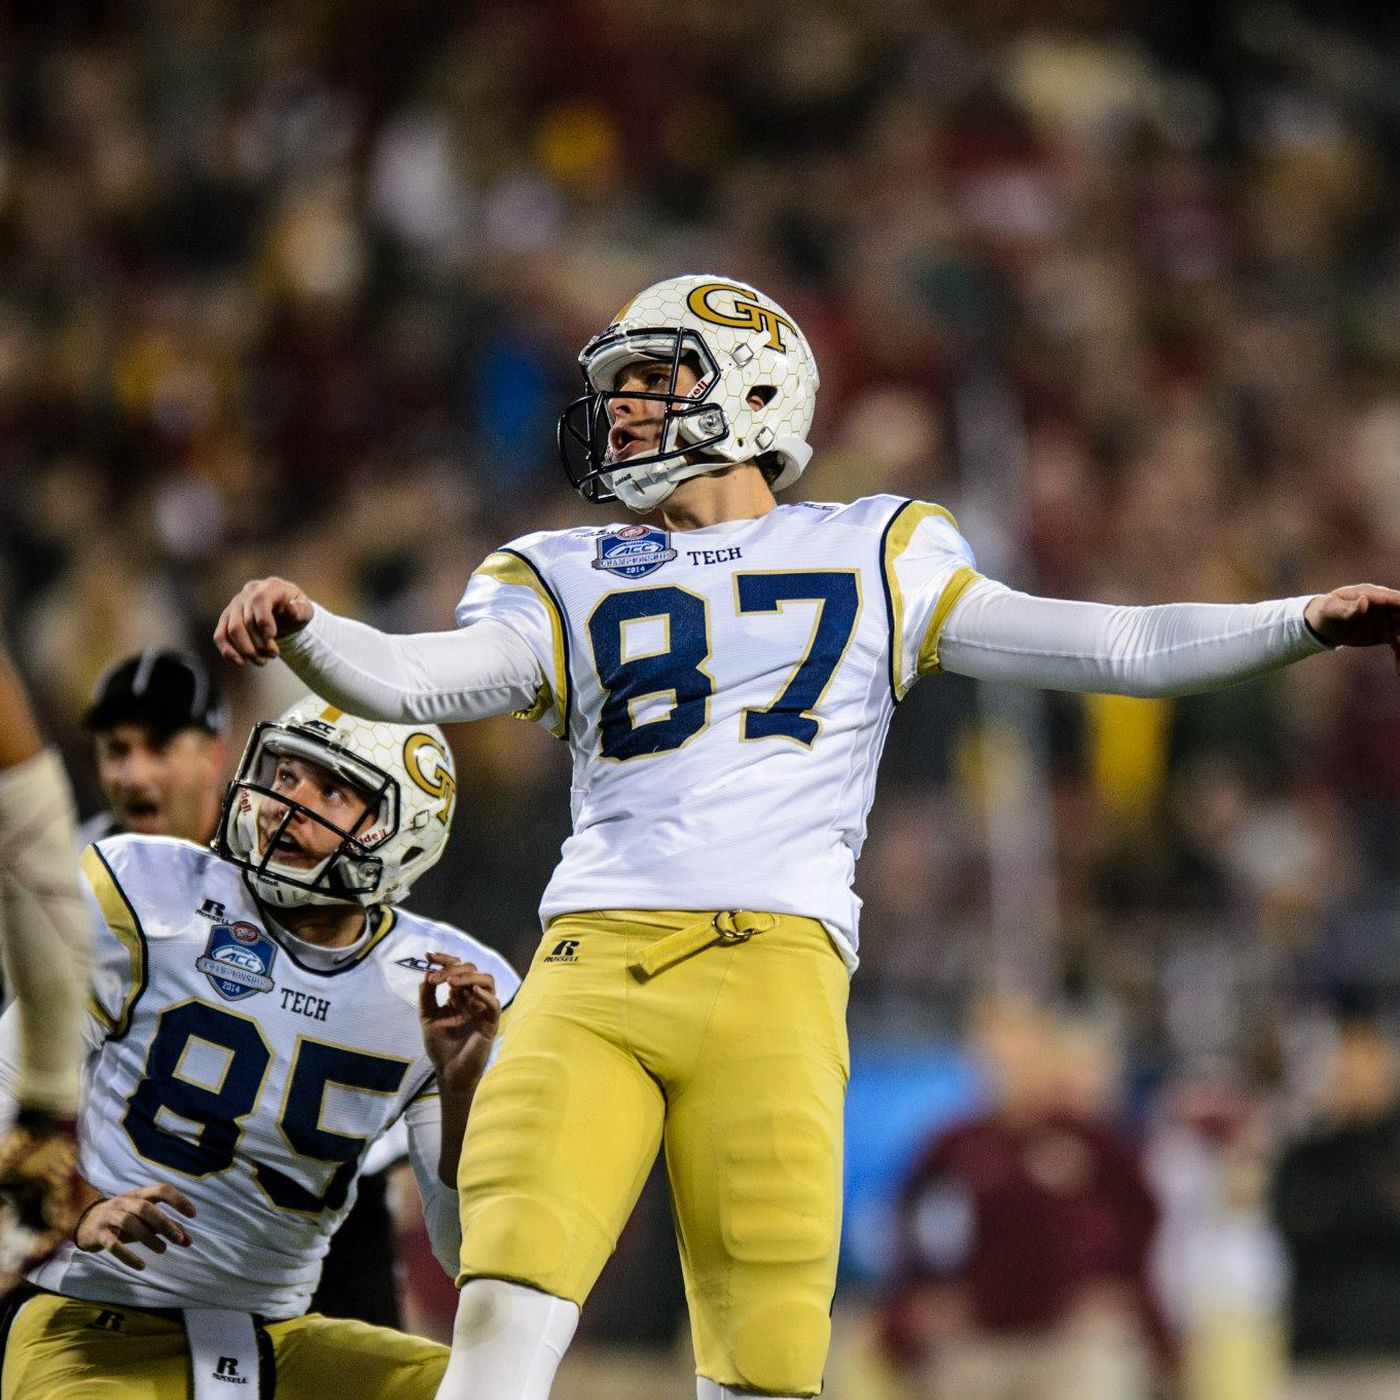 Georgia Tech Football 2015 Position Previews Kickers Punters And Long Snappers From The Rumble Seat